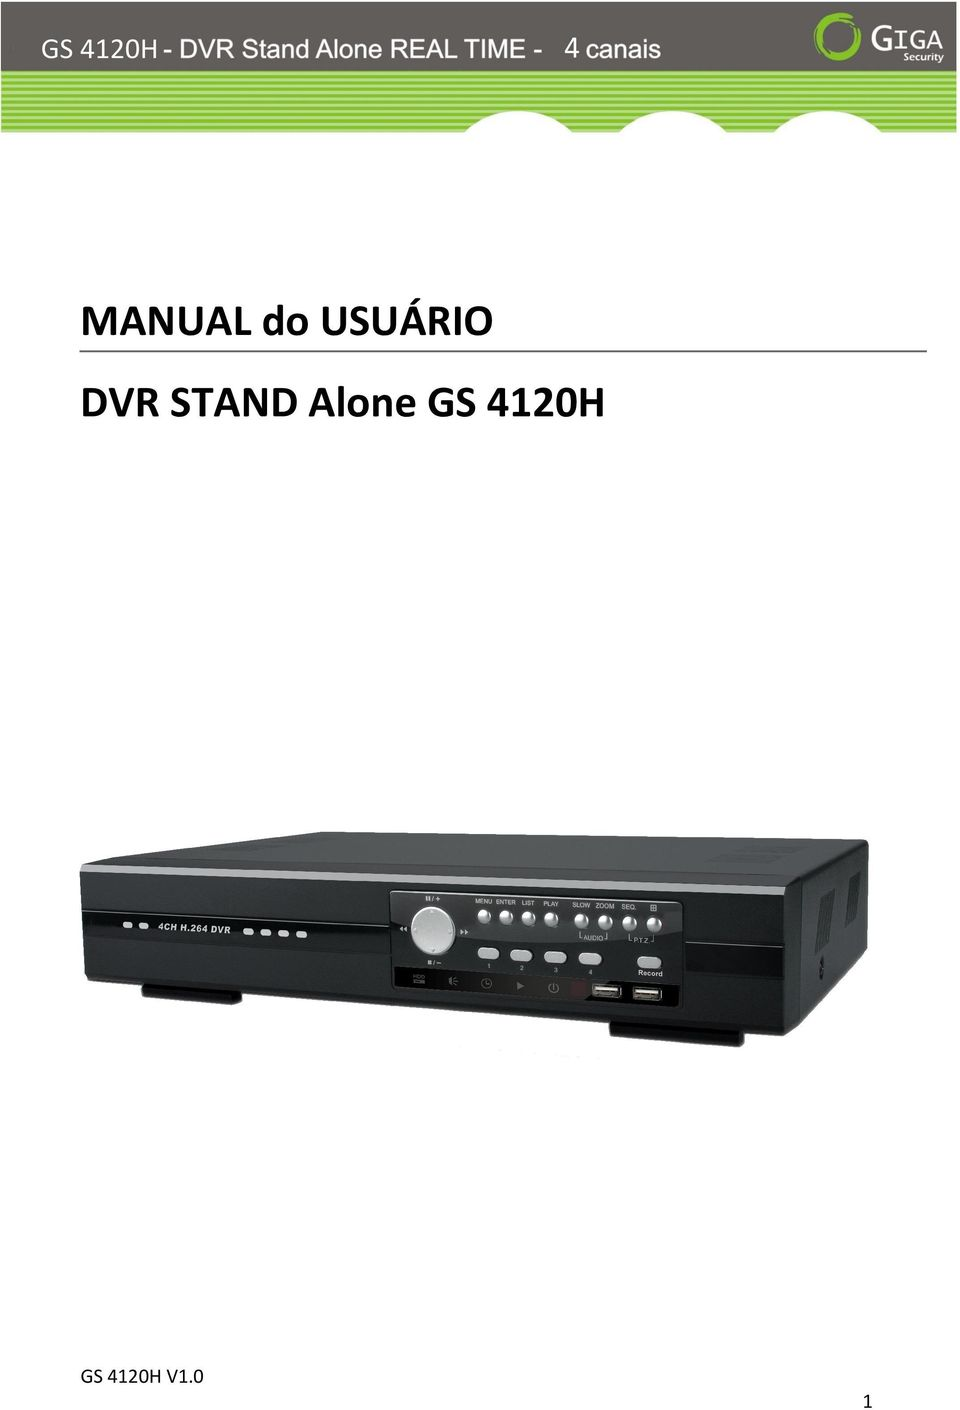 DVR STAND